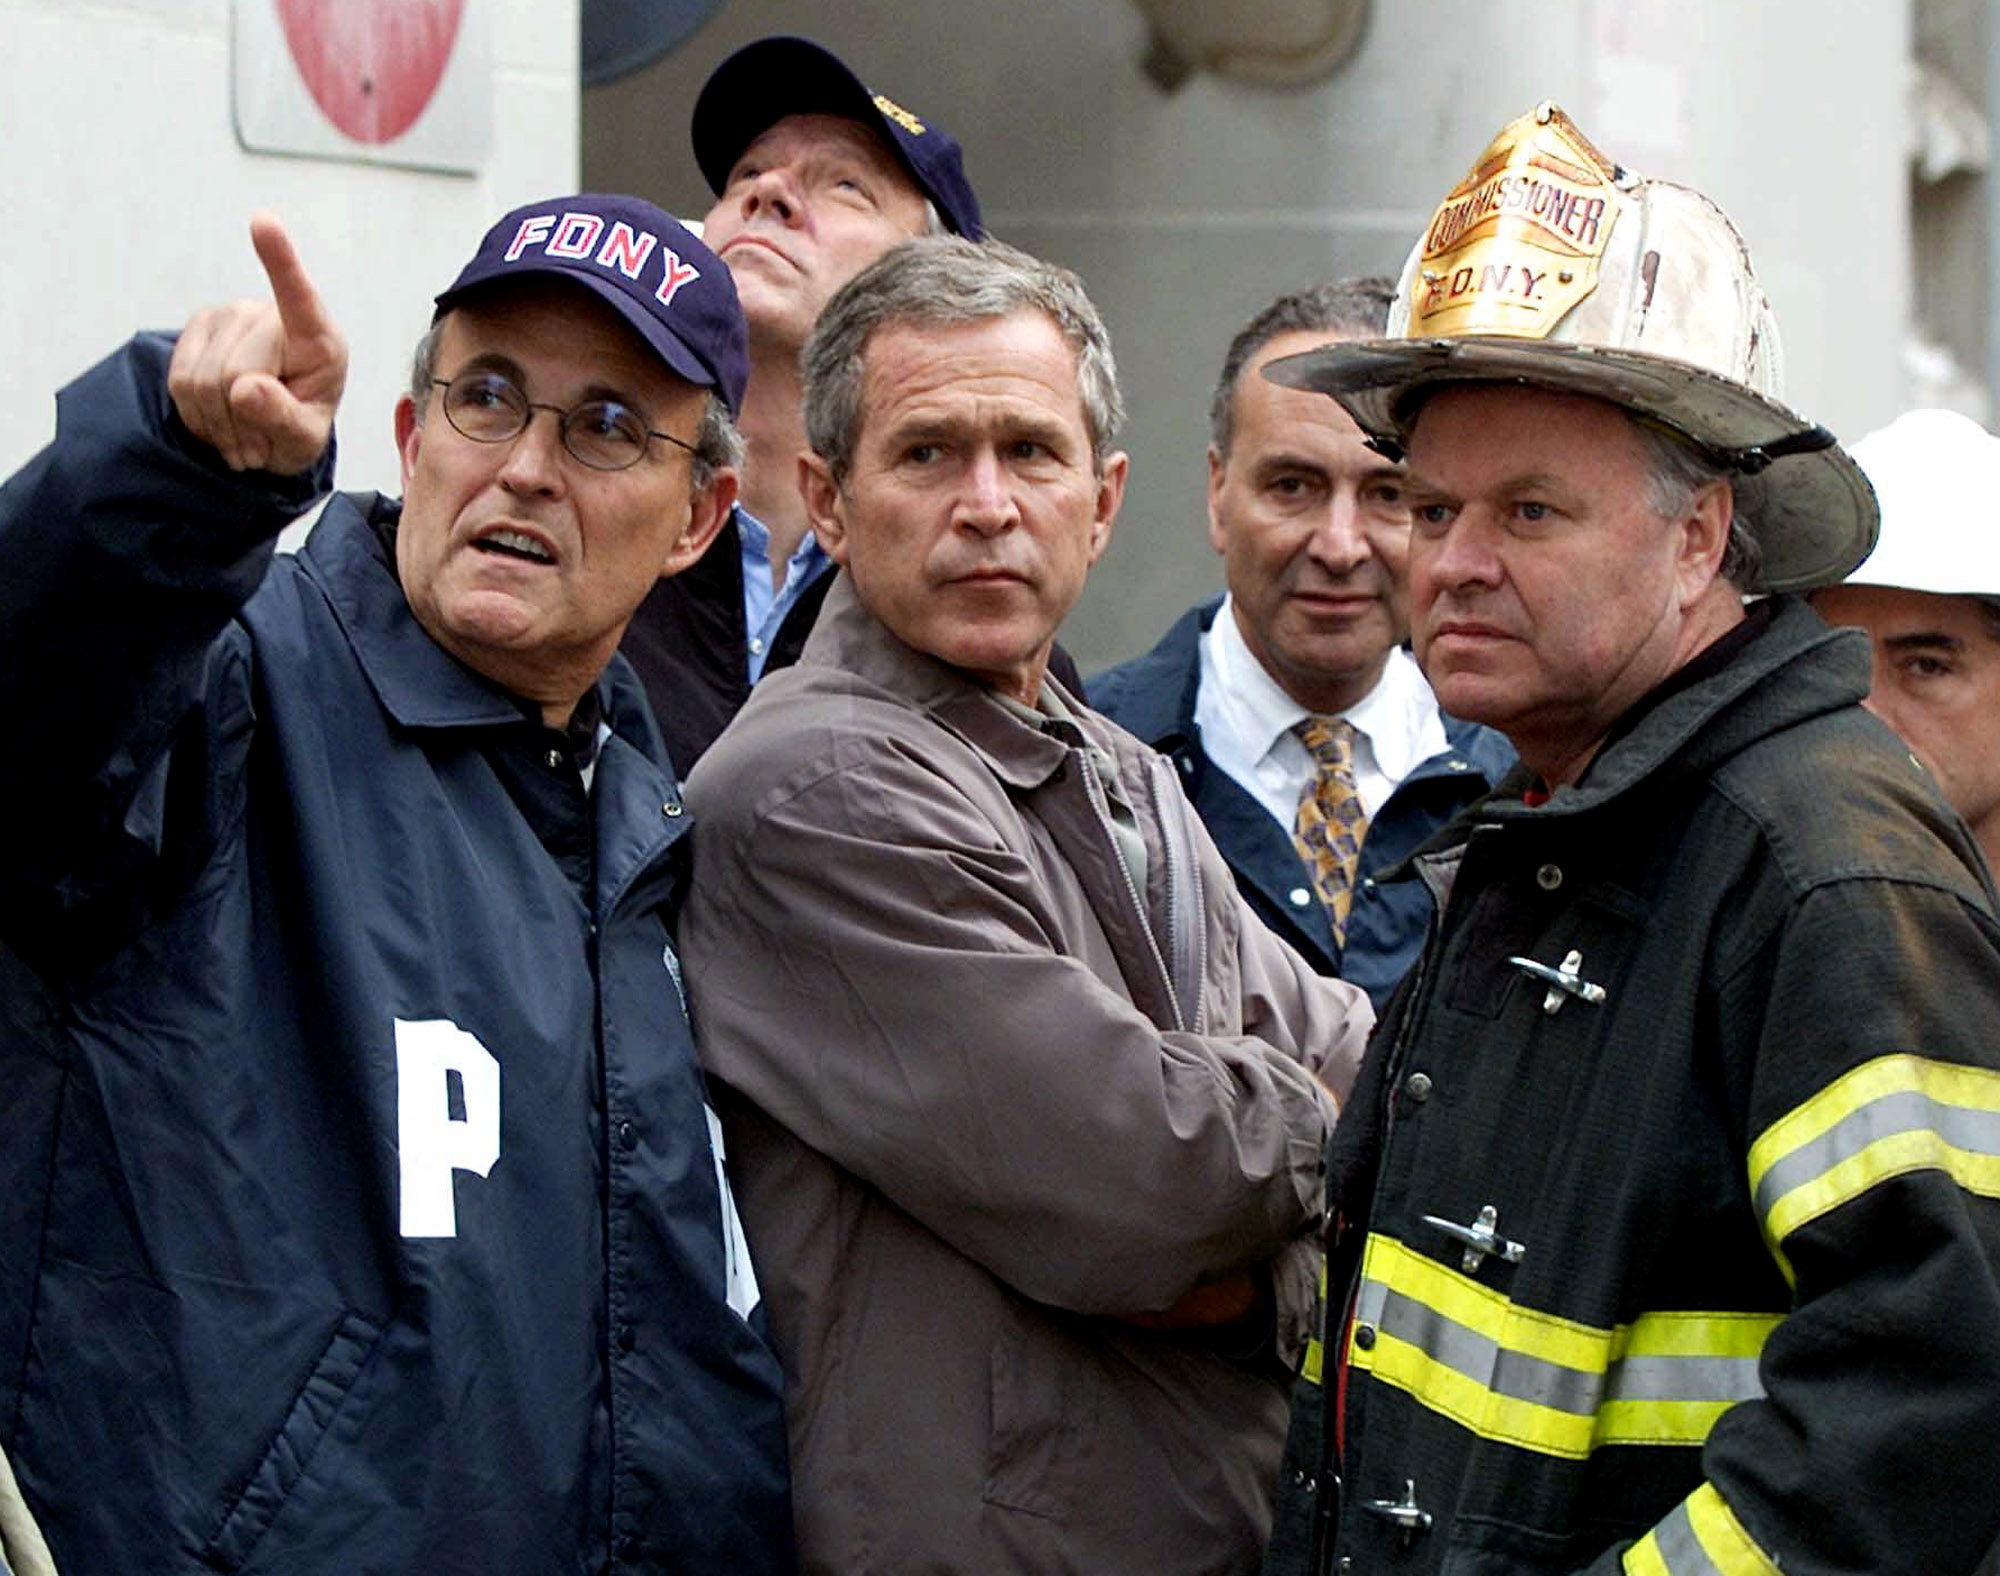 President George W. Bush, center, with, from left, former New York City Mayor Rudolph Giuliani, then-New York Gov. George Pataki, Sen. Charles Schumer, D-N.Y., and former New York City Fire Commissioner Thomas Van Essen look toward the fallen buildings during a tour of the World Trade Center in New York on Sept. 14, 2001. (Doug Mills/AP)